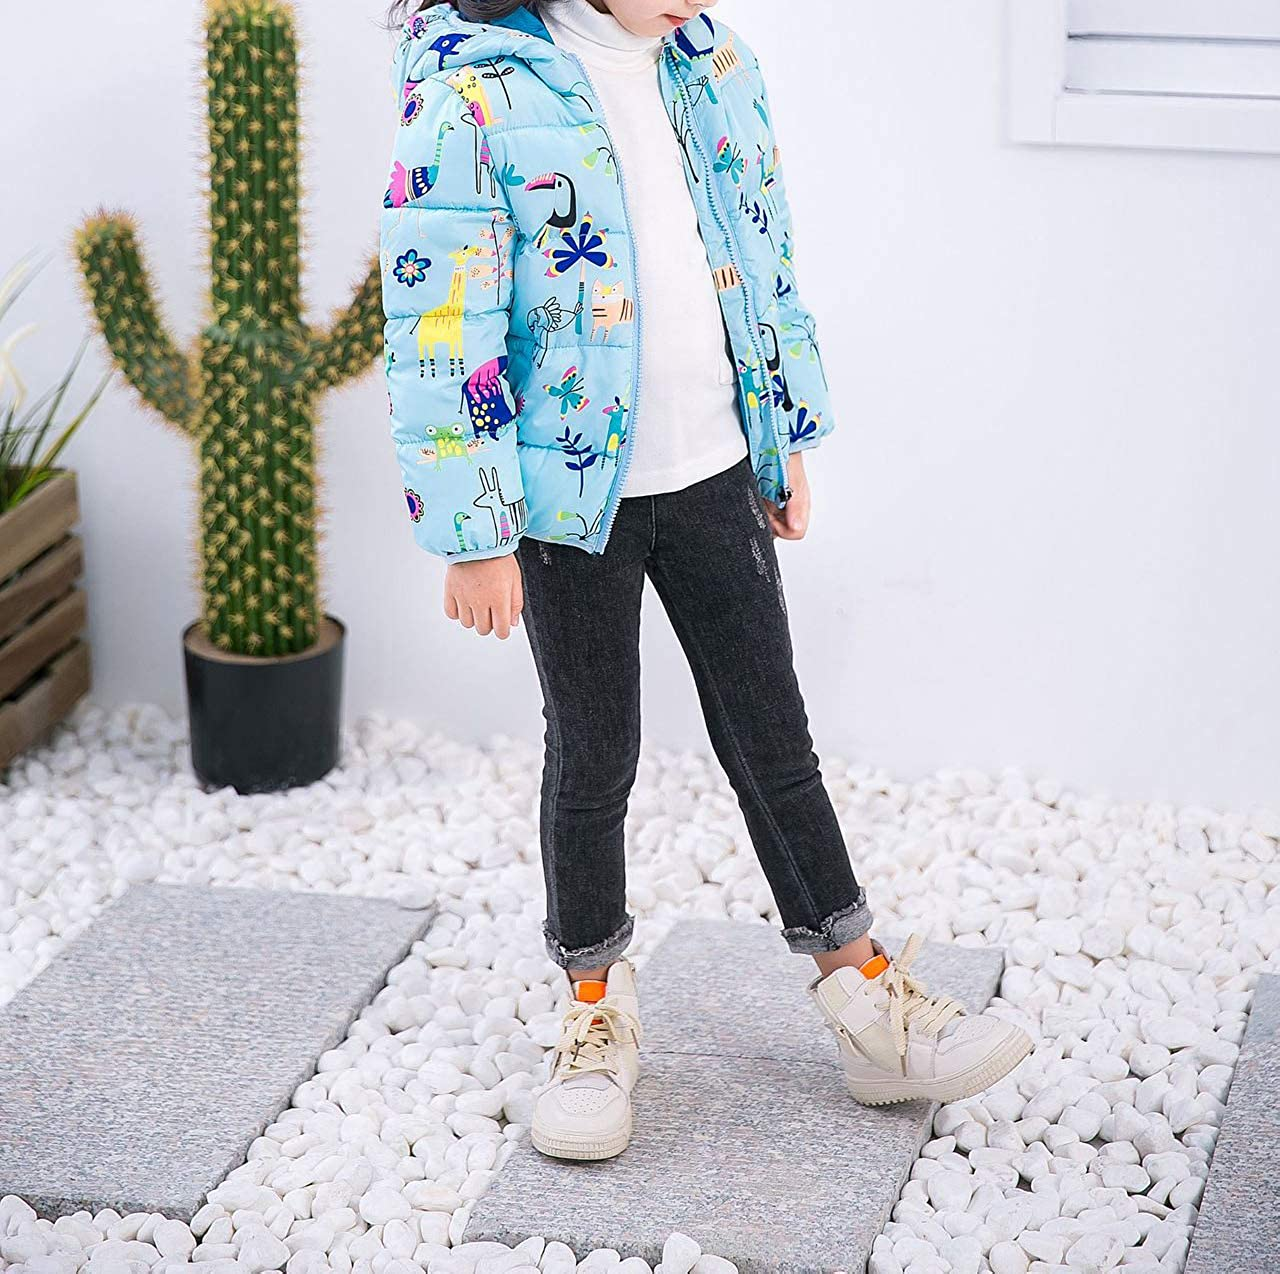 HROUEN Infant Girls Coat Lightweight Warm Cartoon Printed Baby Wear Winter Down Cotton Outfits Jacket Clothes